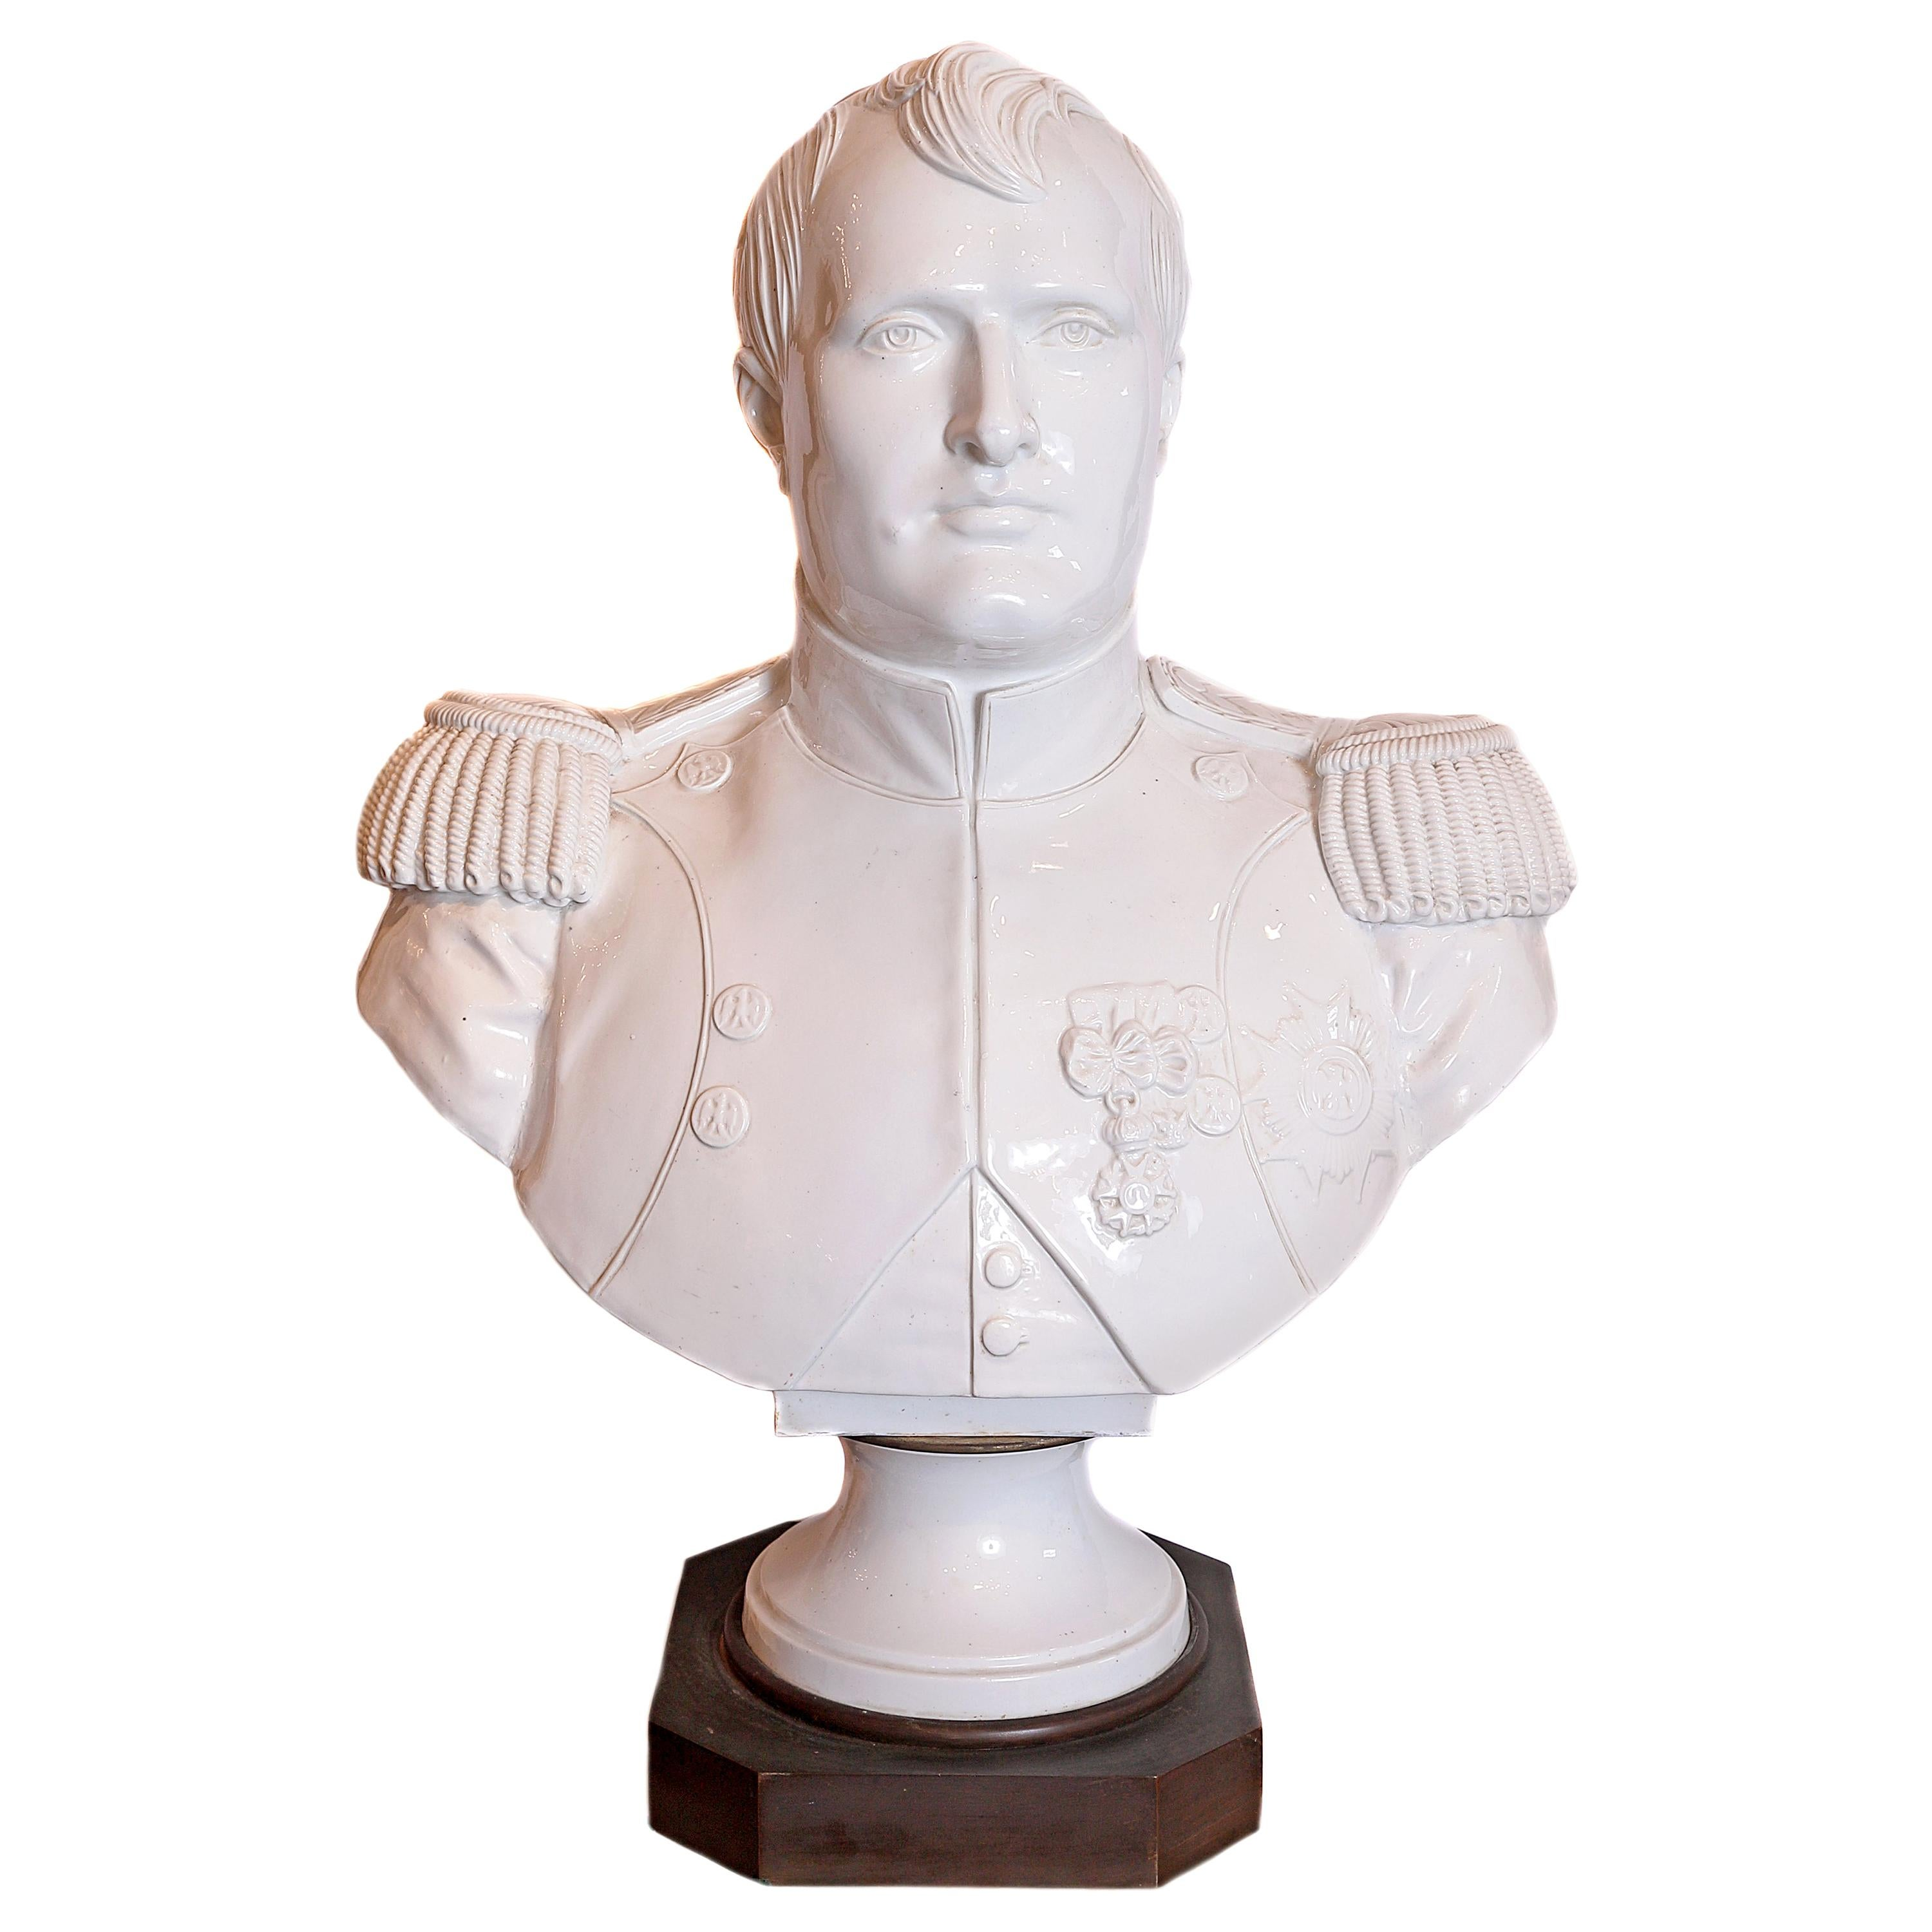 19th Century French Serves Porcelain Bust of Napoleon